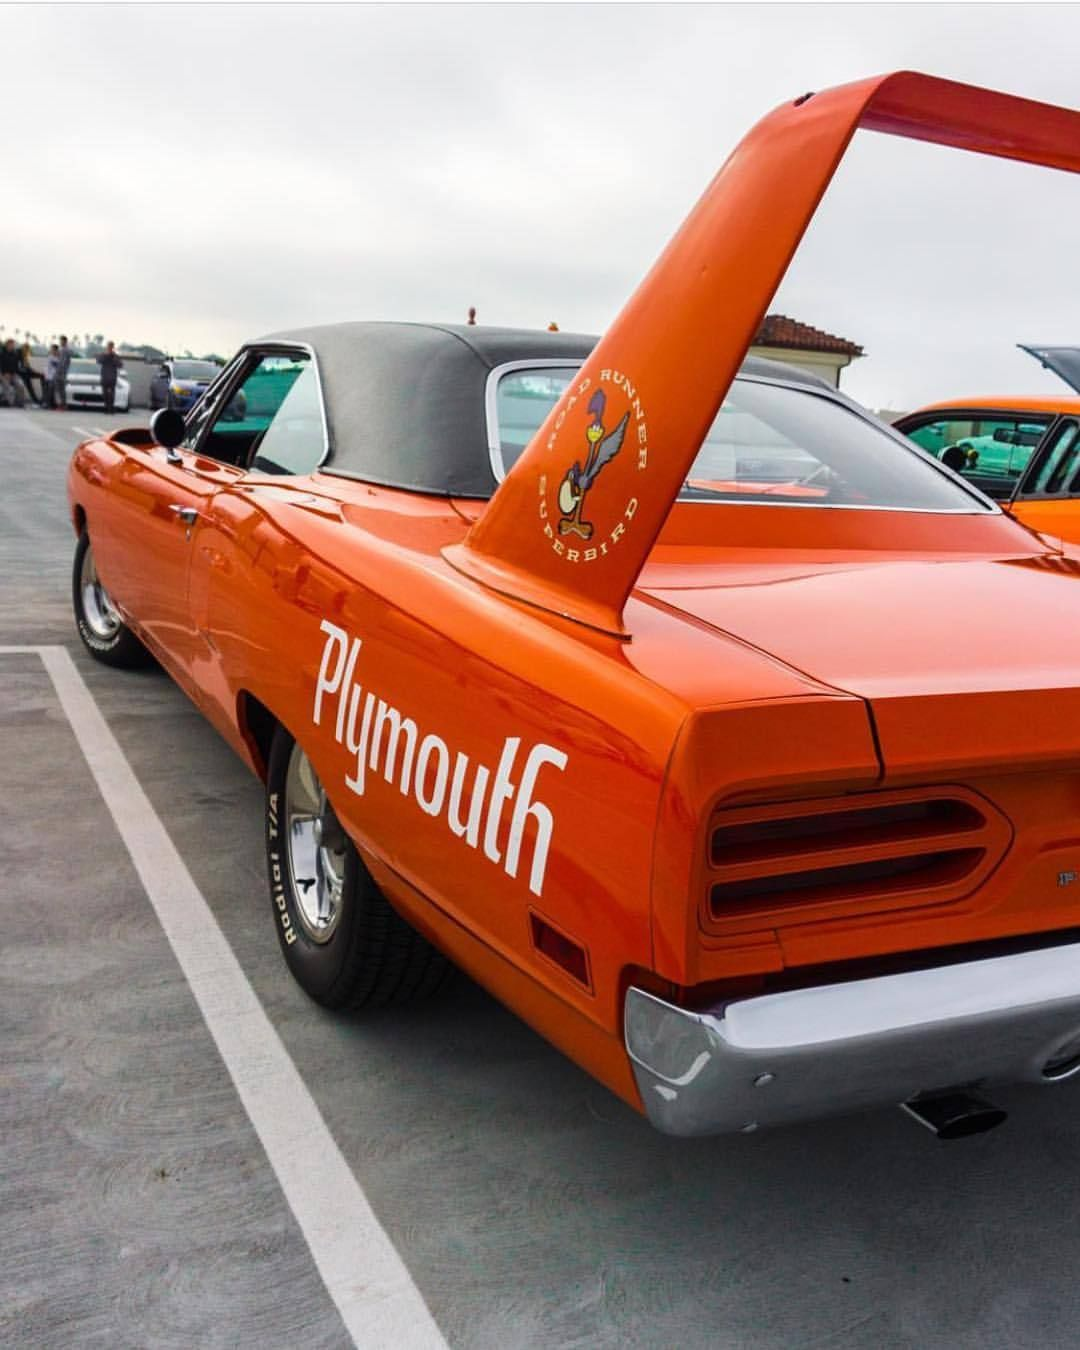 Pin by Anthony Wemmer on Wing Cars | Pinterest | Plymouth superbird ...